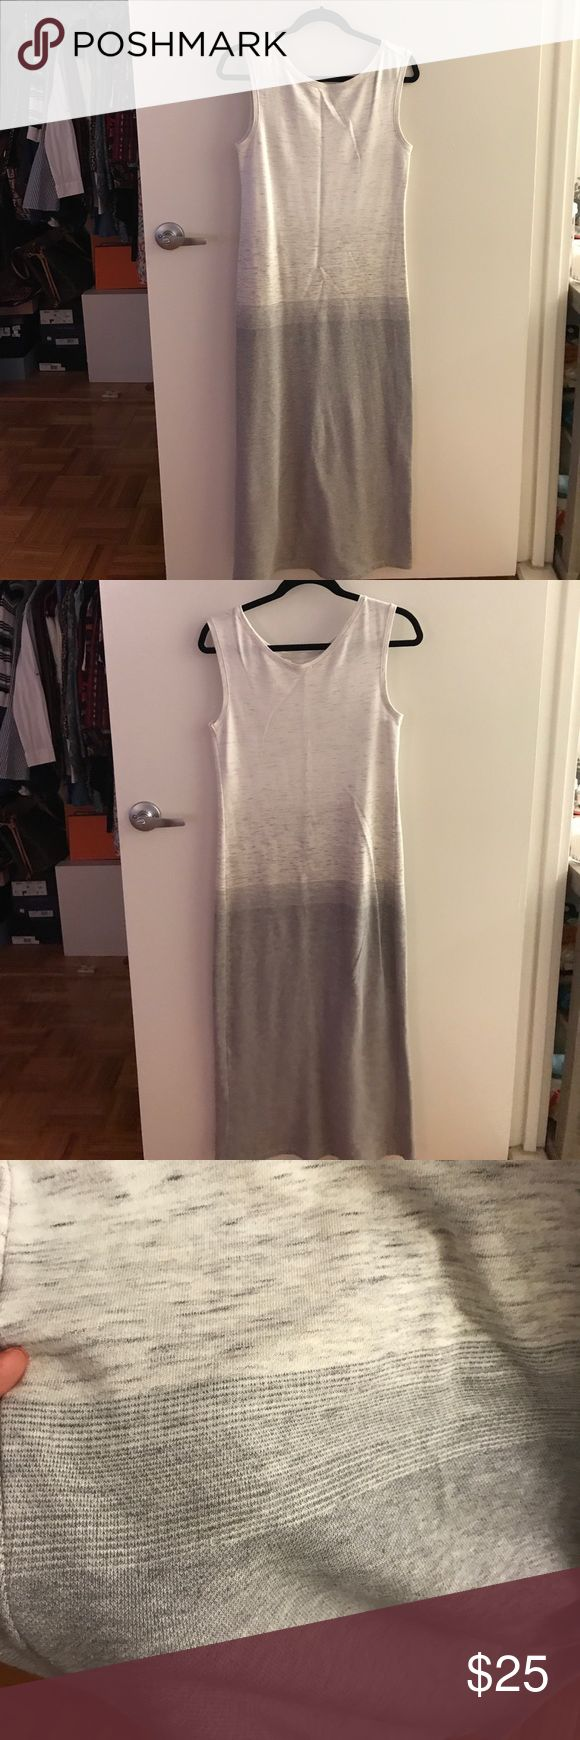 Uniqlo ombré maxi dress Worn three times. Beige to gray ombré pattern. Front neck is slightly higher than back Uniqlo Dresses Maxi